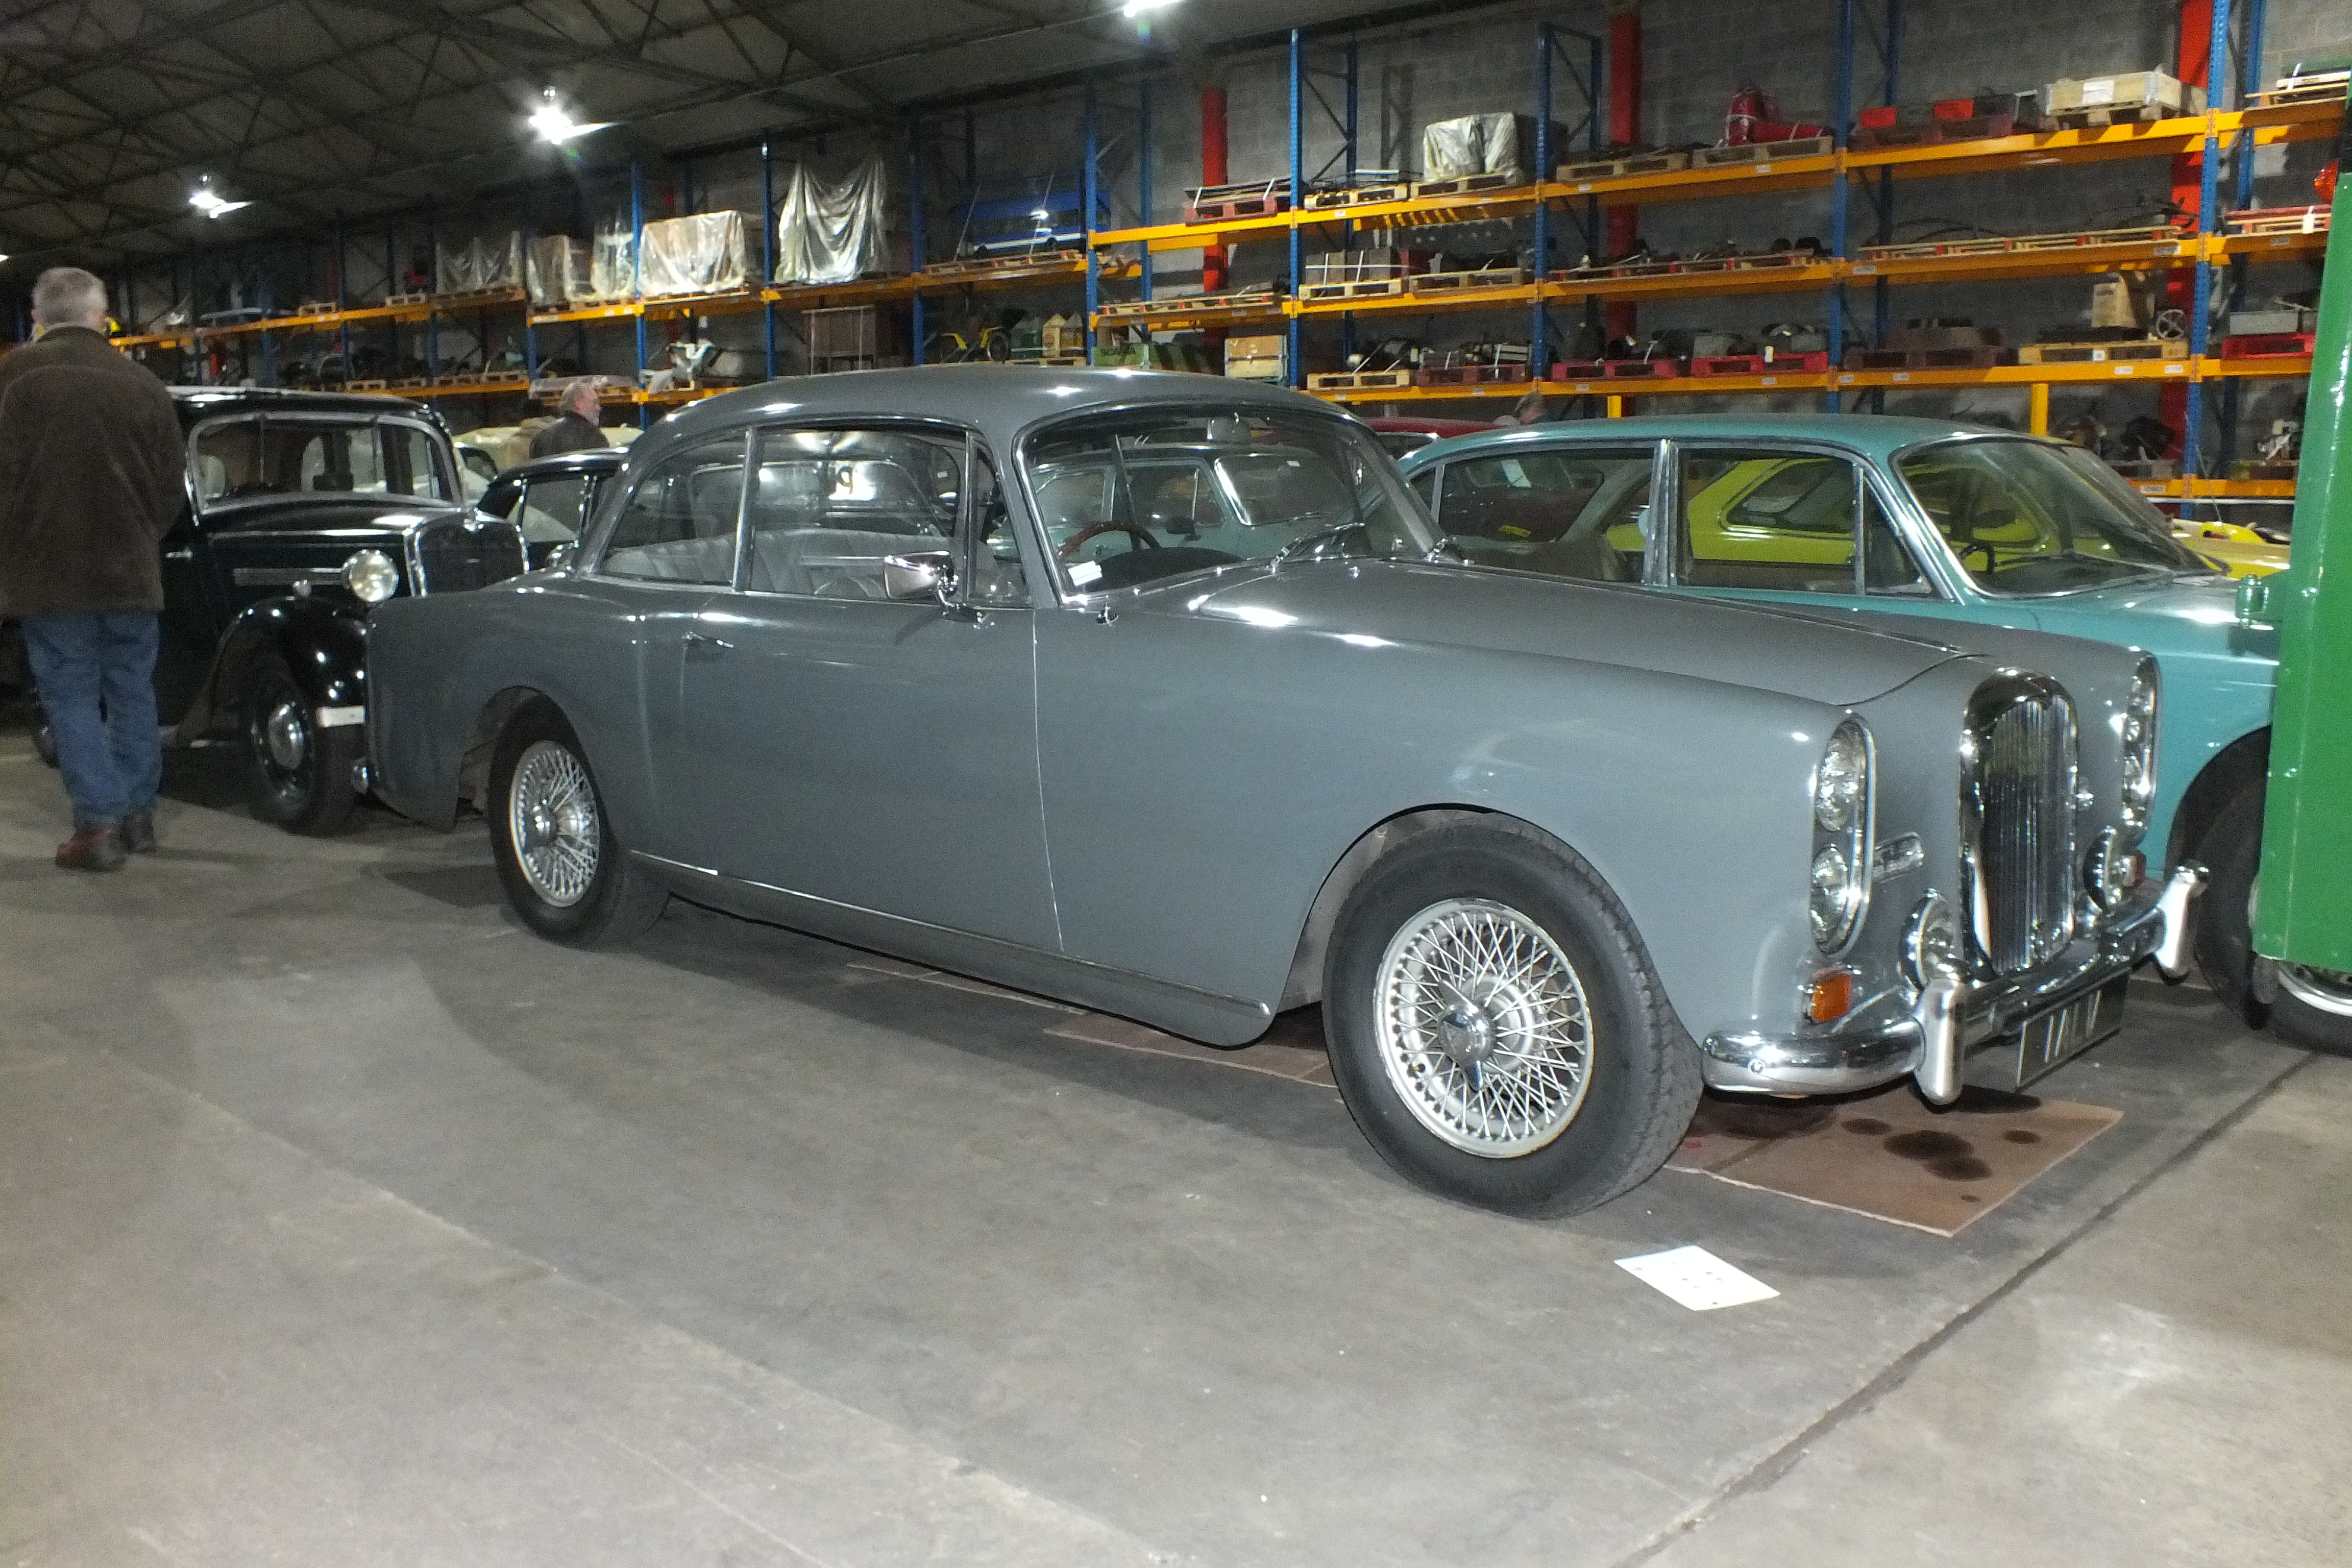 27326 1965 TE21 saloon 1 ALV owned by BAe and stored at CTM. A former Works car with a TF dashboard.